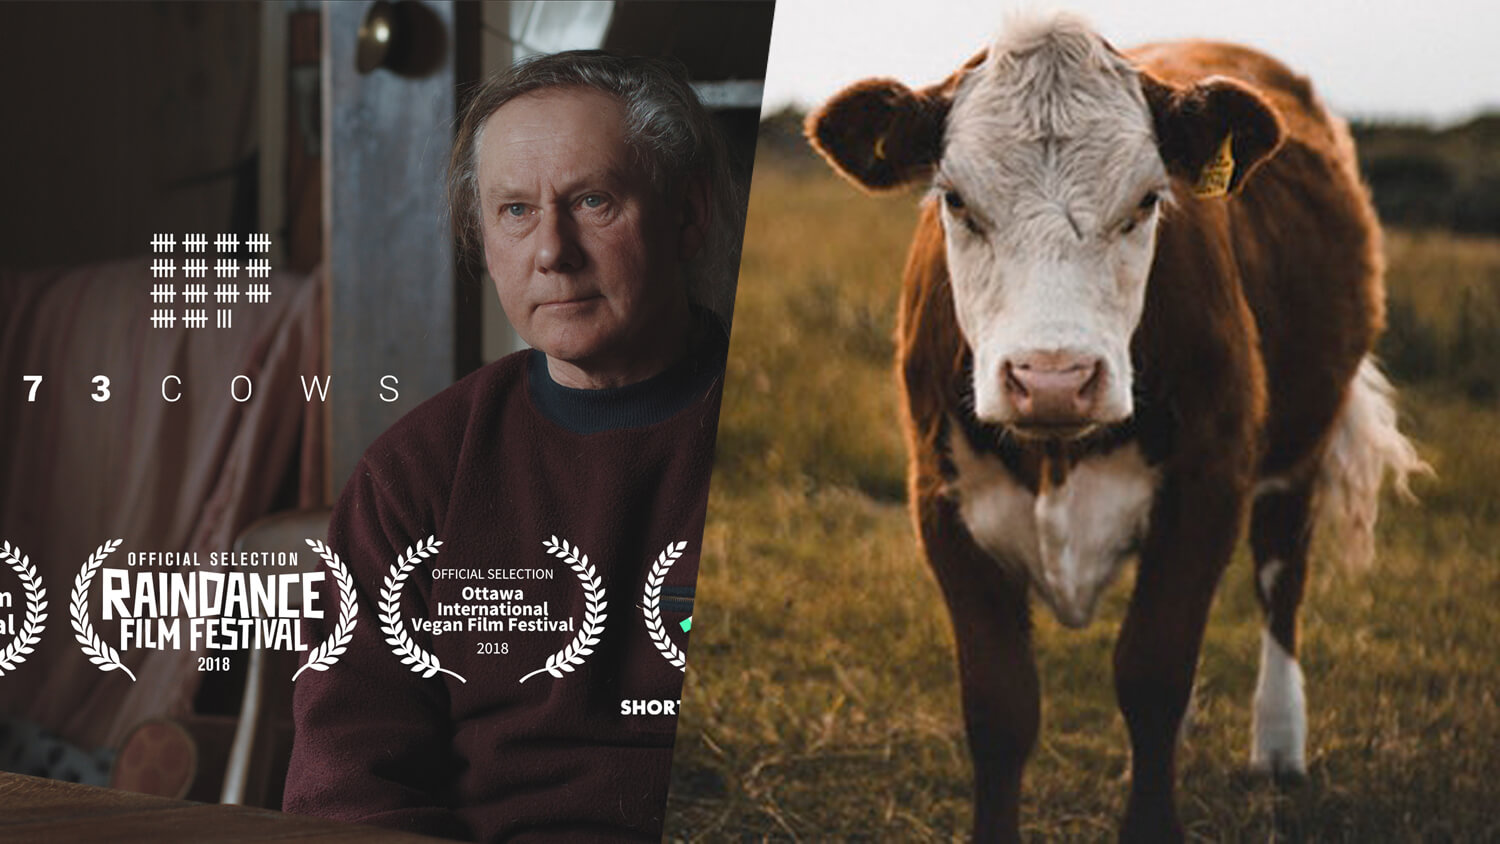 Documentary '73 Cows' on Former Beef Farmer Jay Wilde Receives BAFTA Nomination for Best Short Film